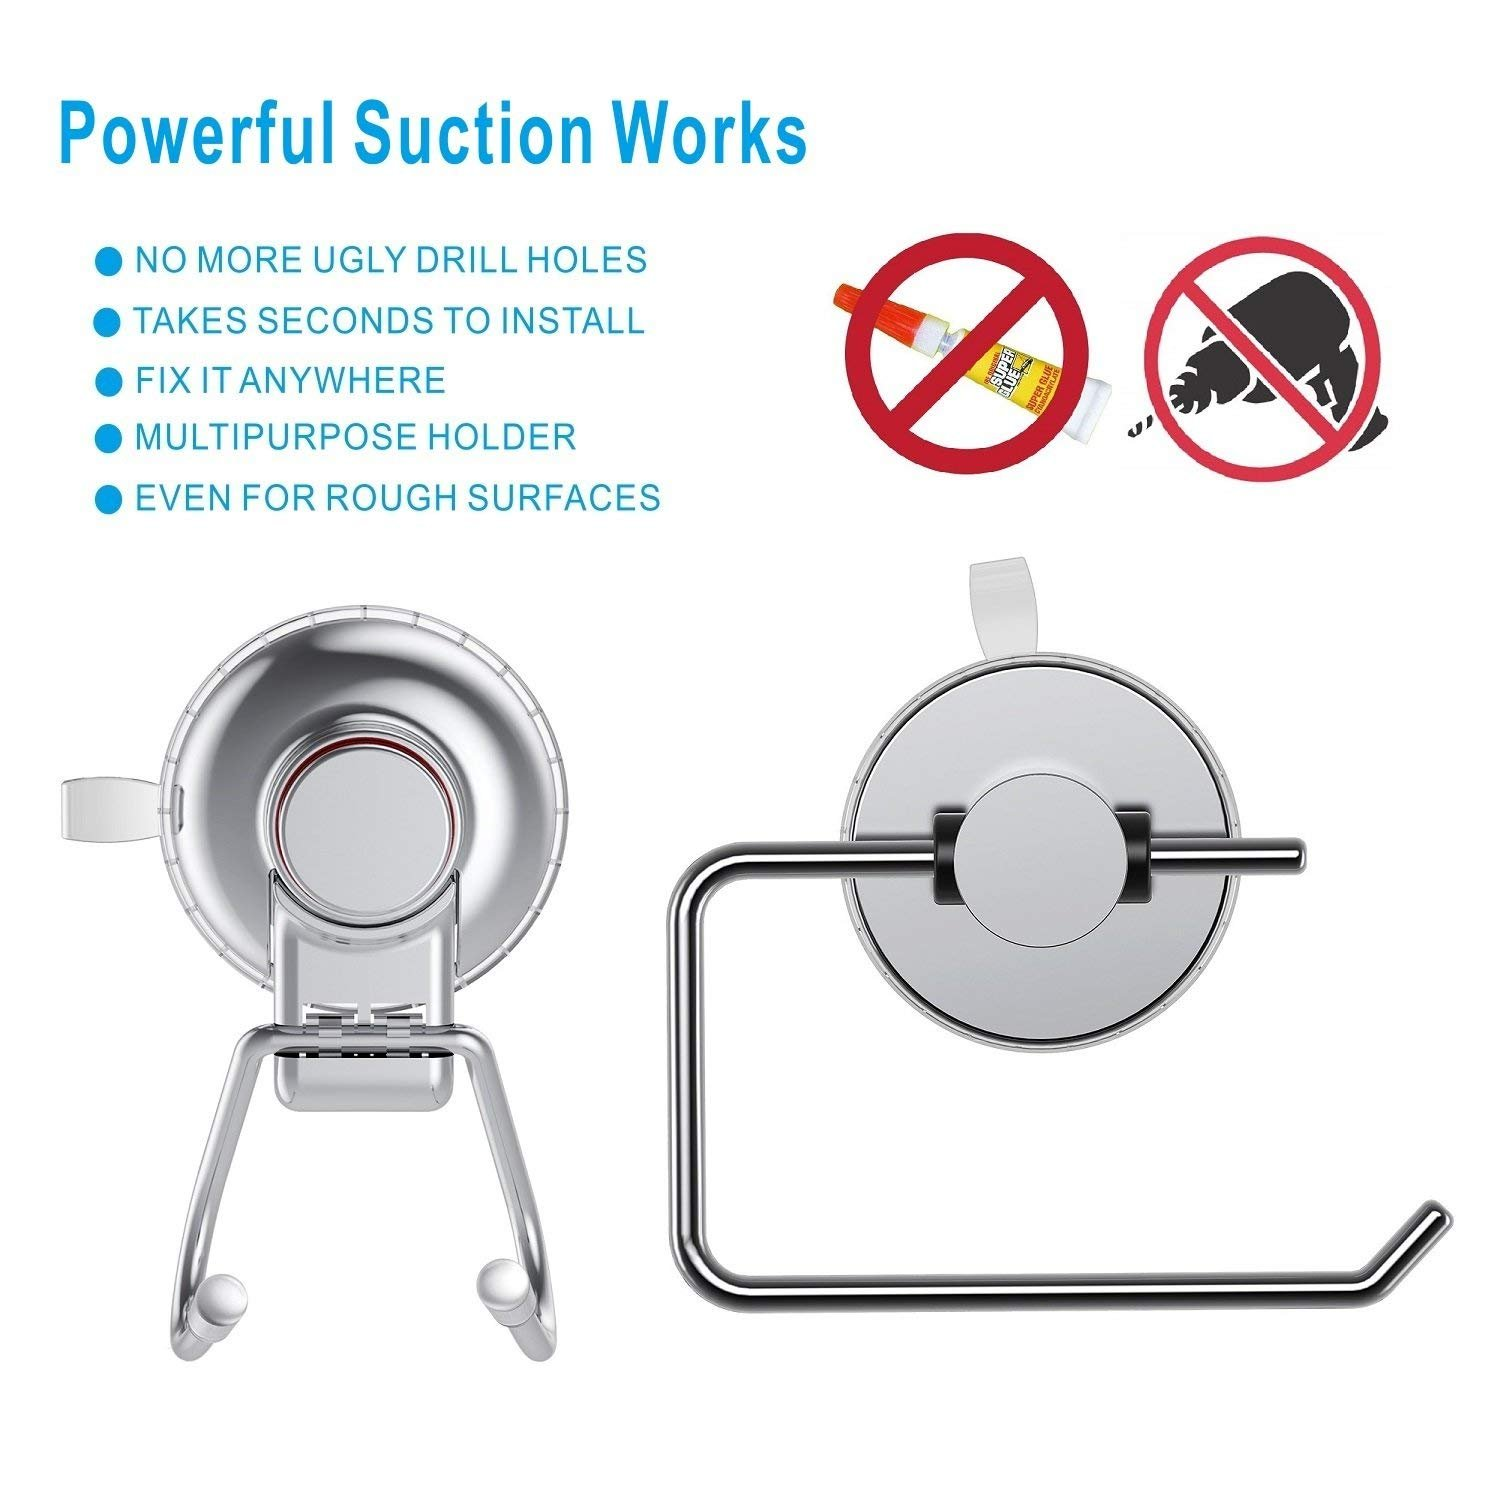 CQSTIME Toilet Roll Holder & Suction Cup Holder | Perfect Household Accessory | Ideal for Toilets & Bathrooms | Stainless Steel Chrome Finish | Easy to Install & Remove | Works on all Flat Surfaces by CQSTIME (Image #3)